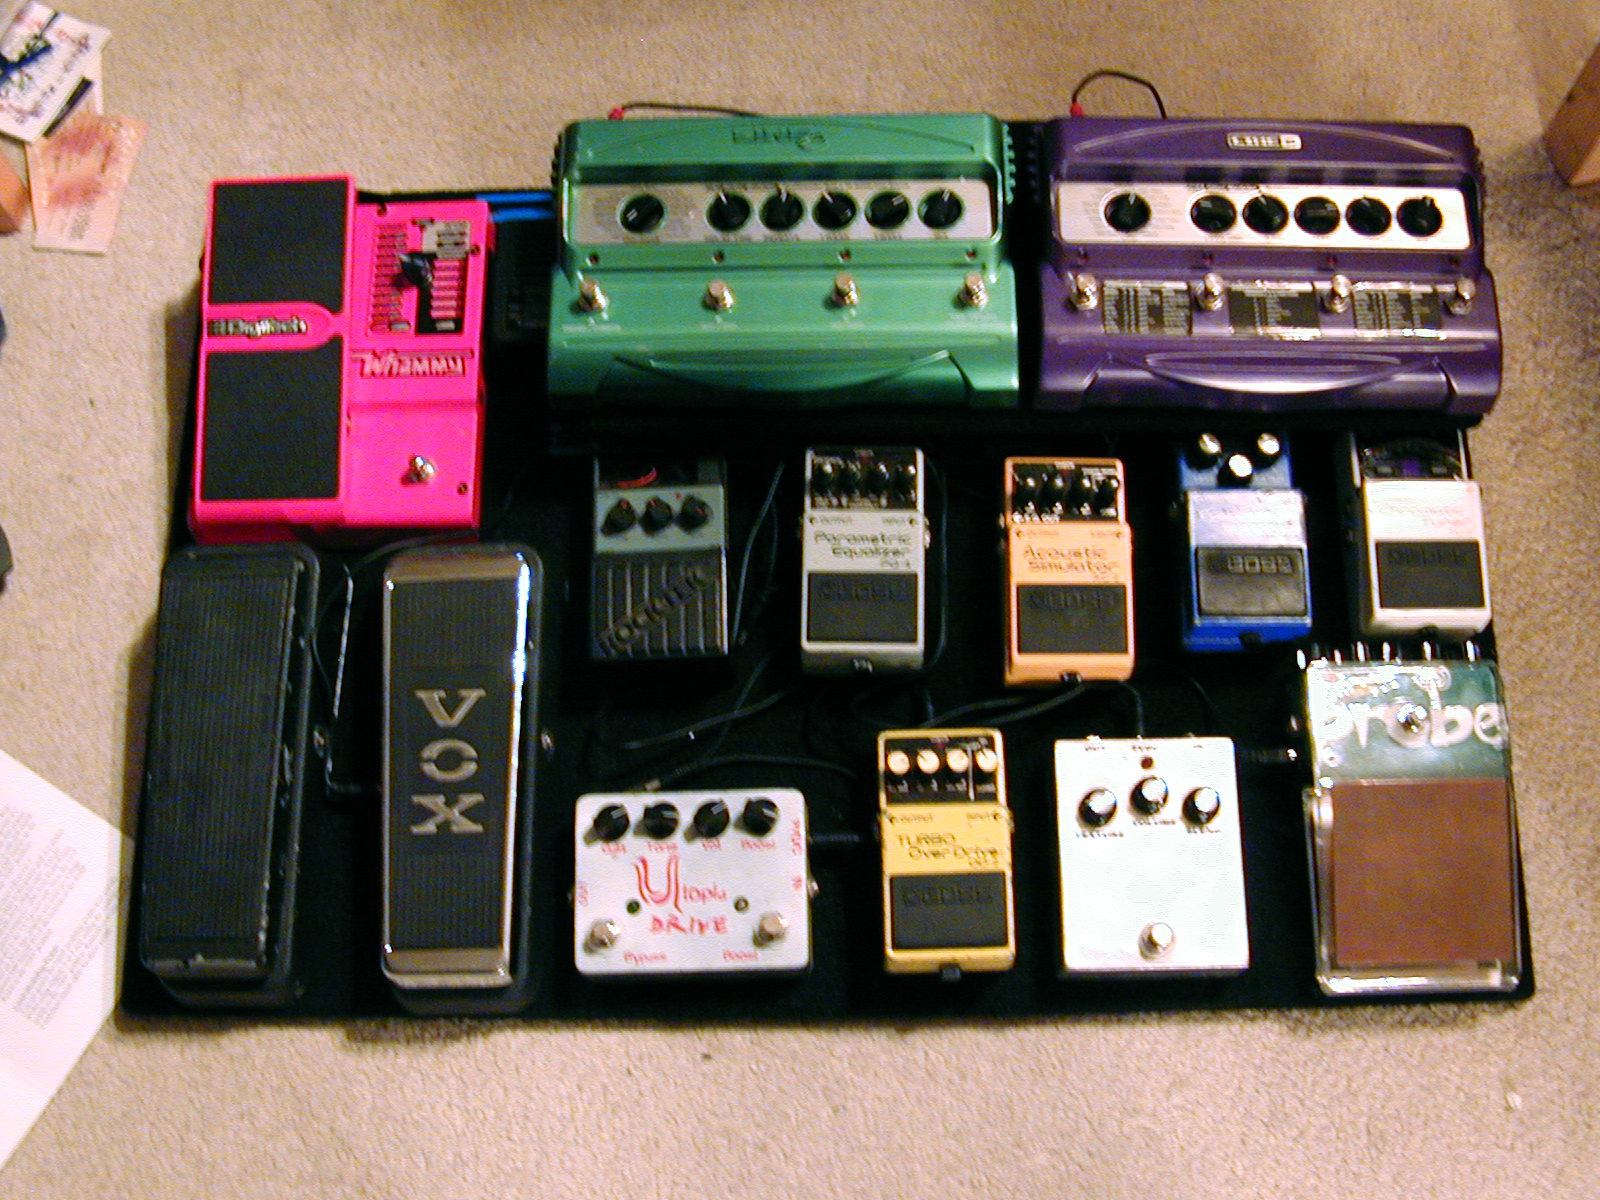 file boboroshi 39 s pedalboard 2006 01 29 wikimedia commons. Black Bedroom Furniture Sets. Home Design Ideas